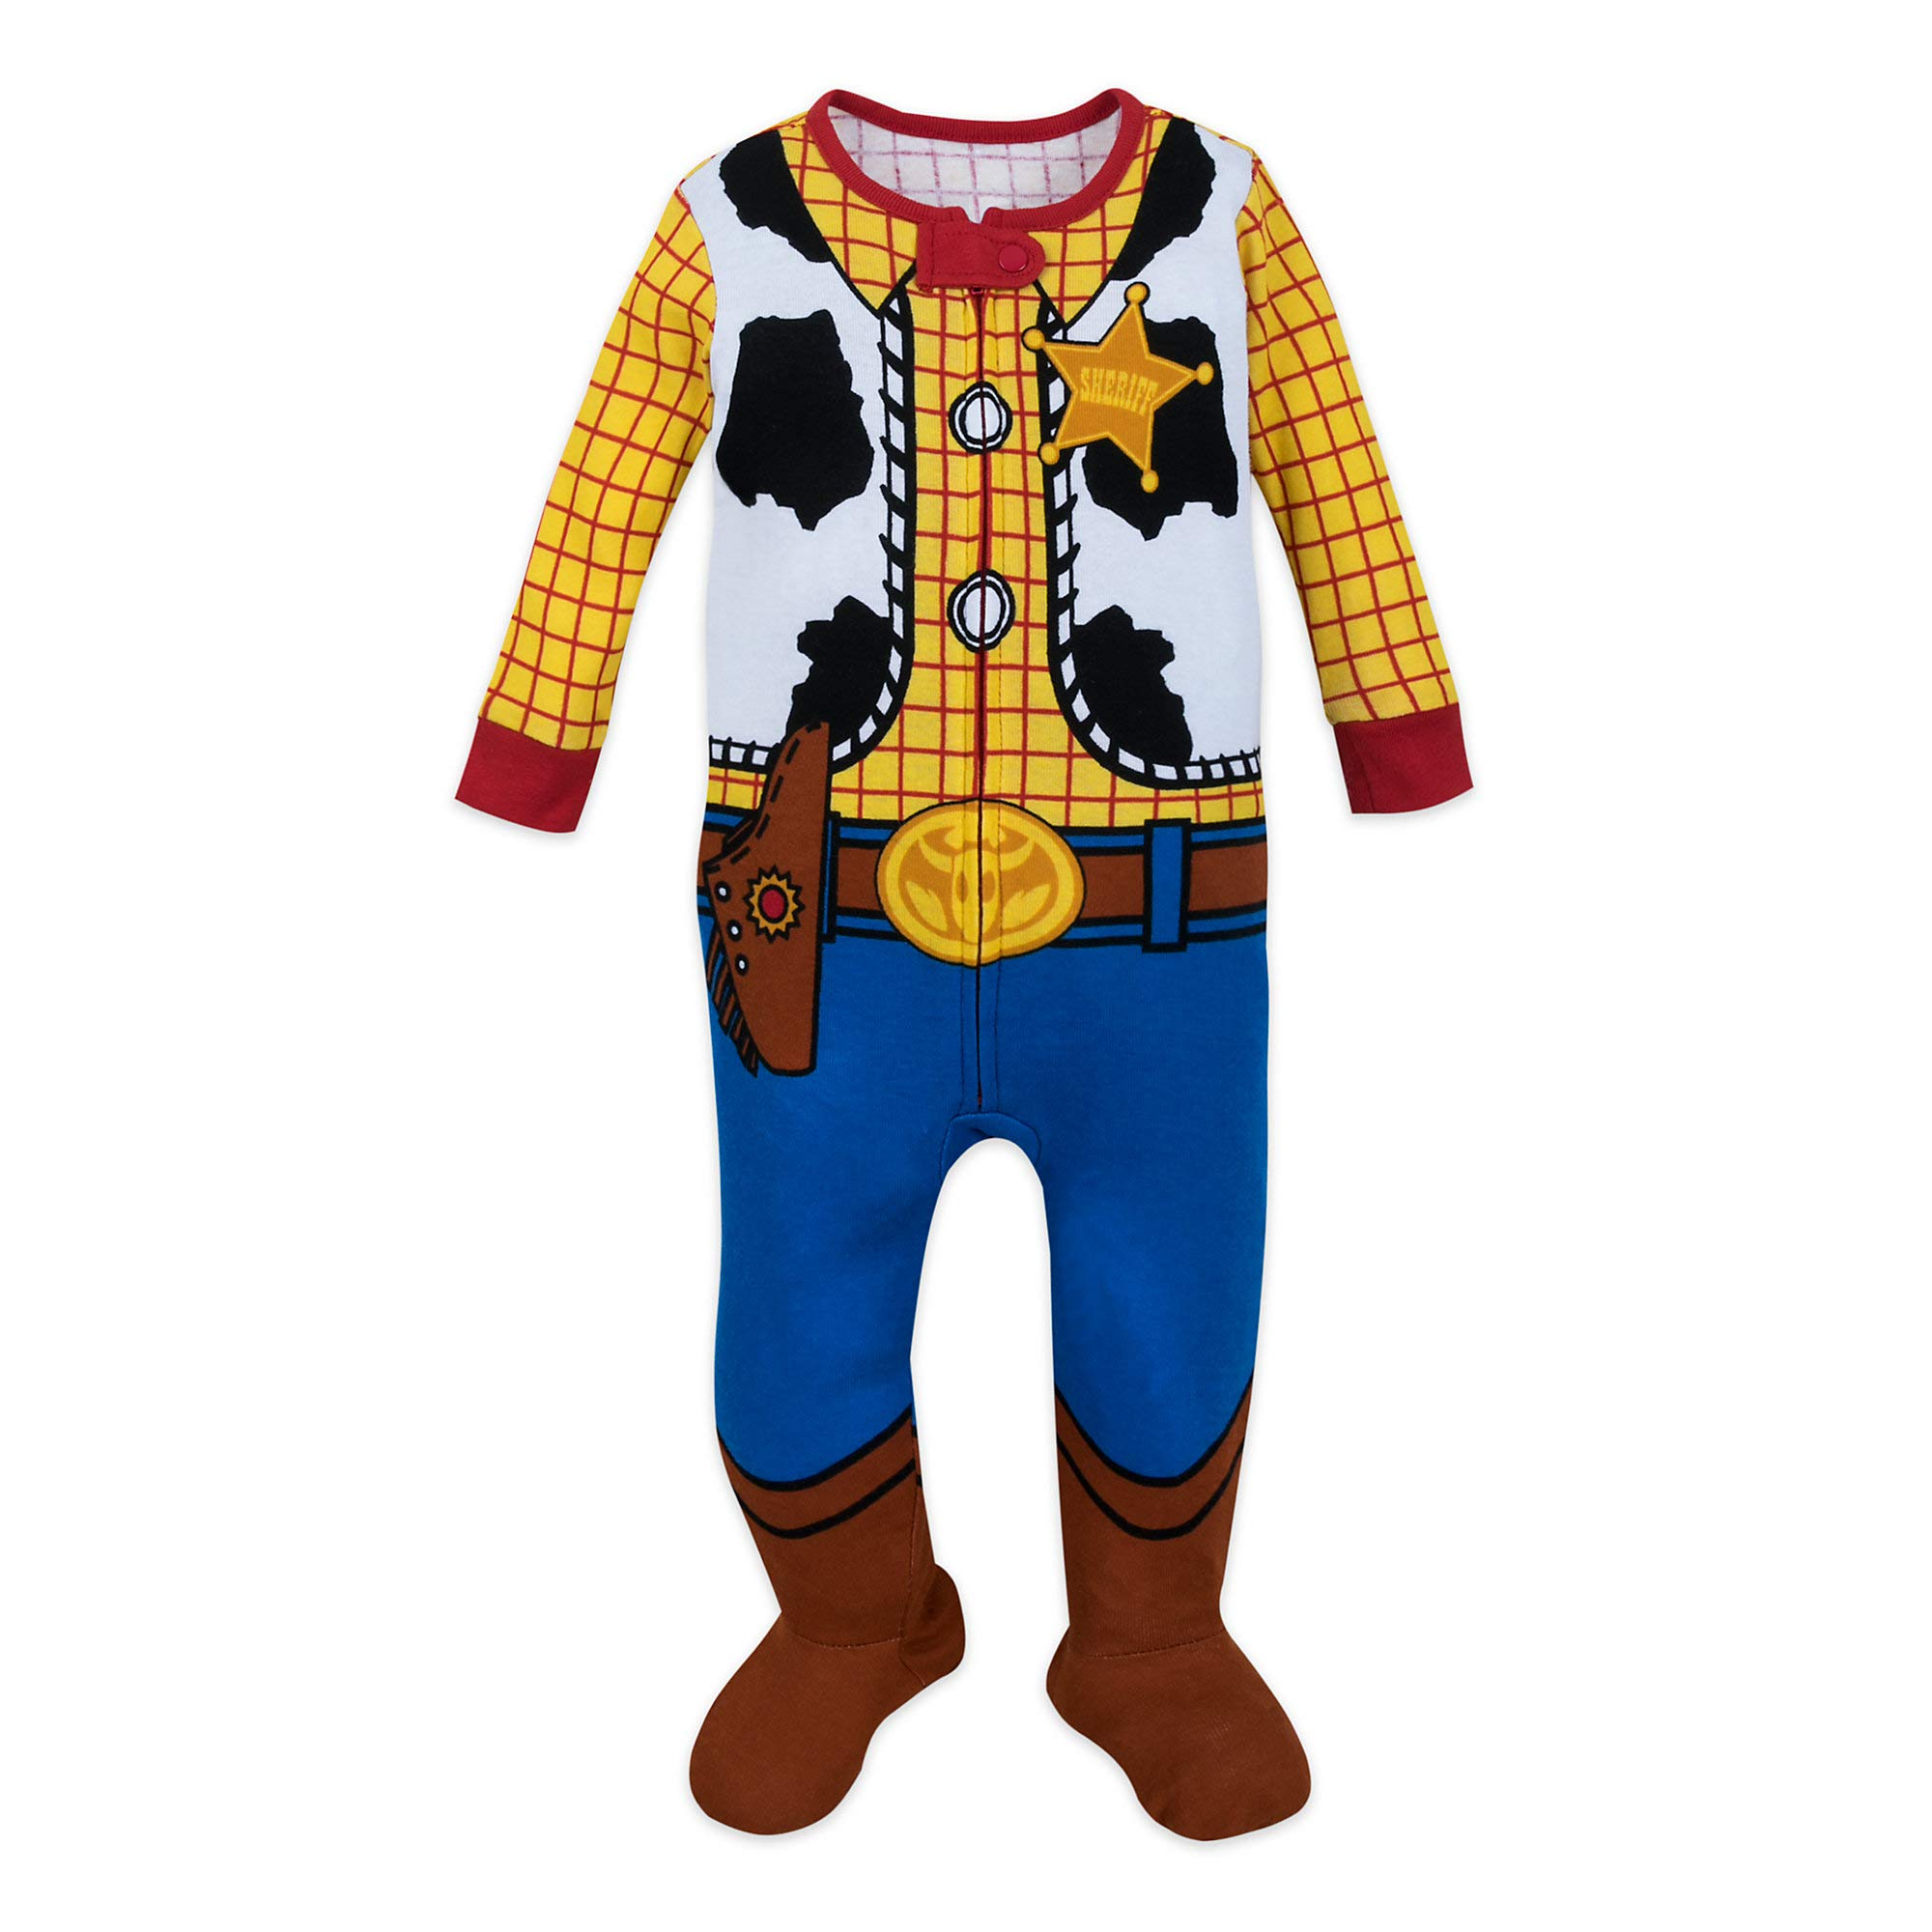 Disney Woody Stretchie for Baby - Toy Story Size 12-18 MO Multi by Disney